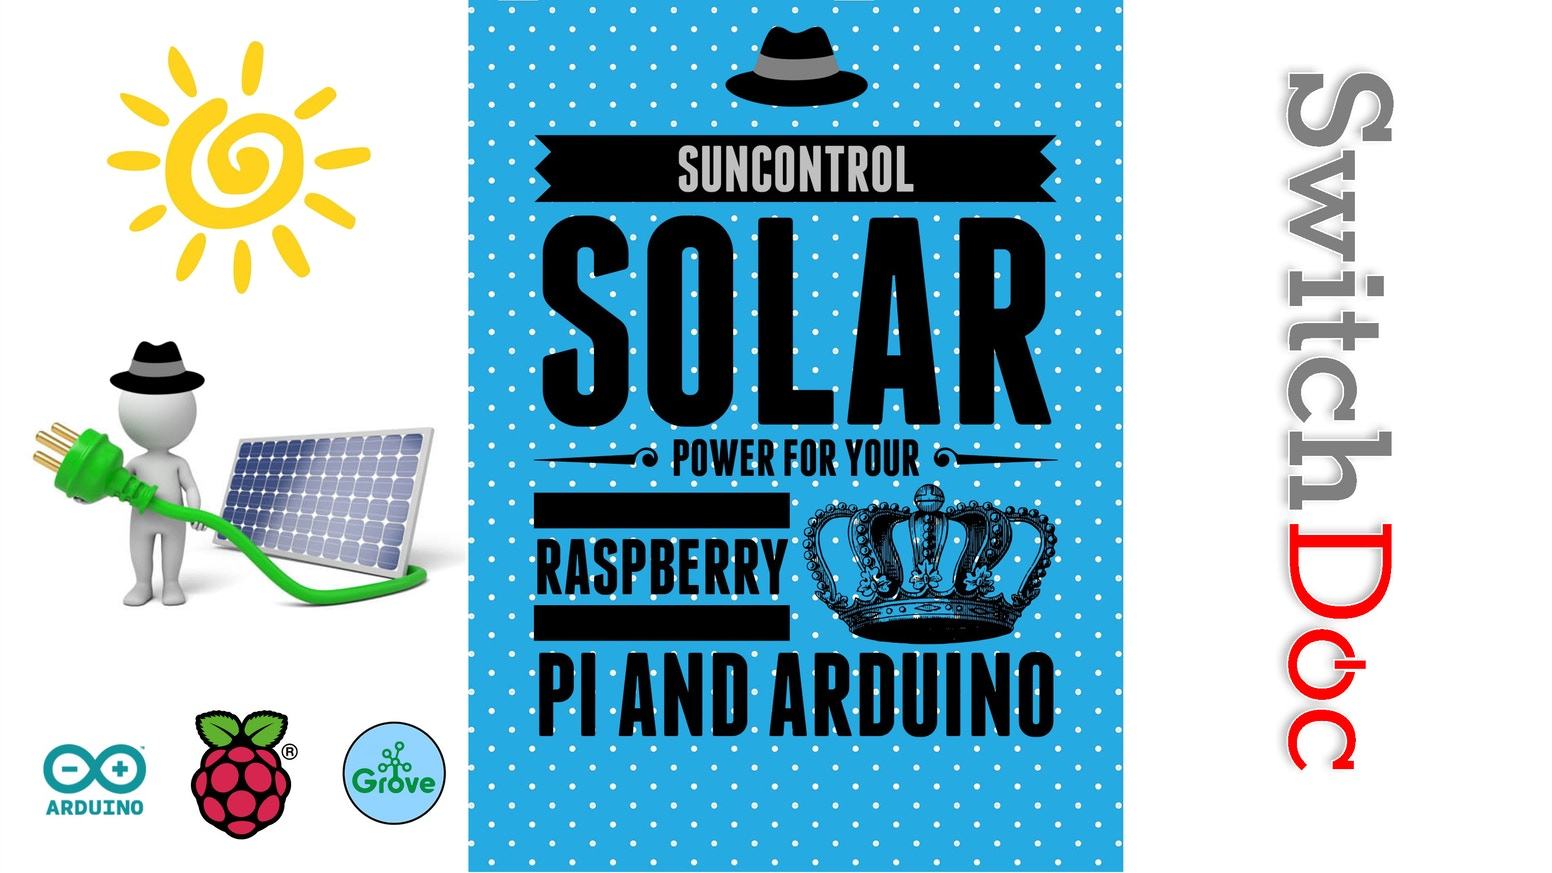 Suncontrol Diy Solar Power For The Raspberry Pi Arduino By Mini Panel And Battery Charger Test Home Circuits Is An Easy To Use Board Hook Up Your Or Project